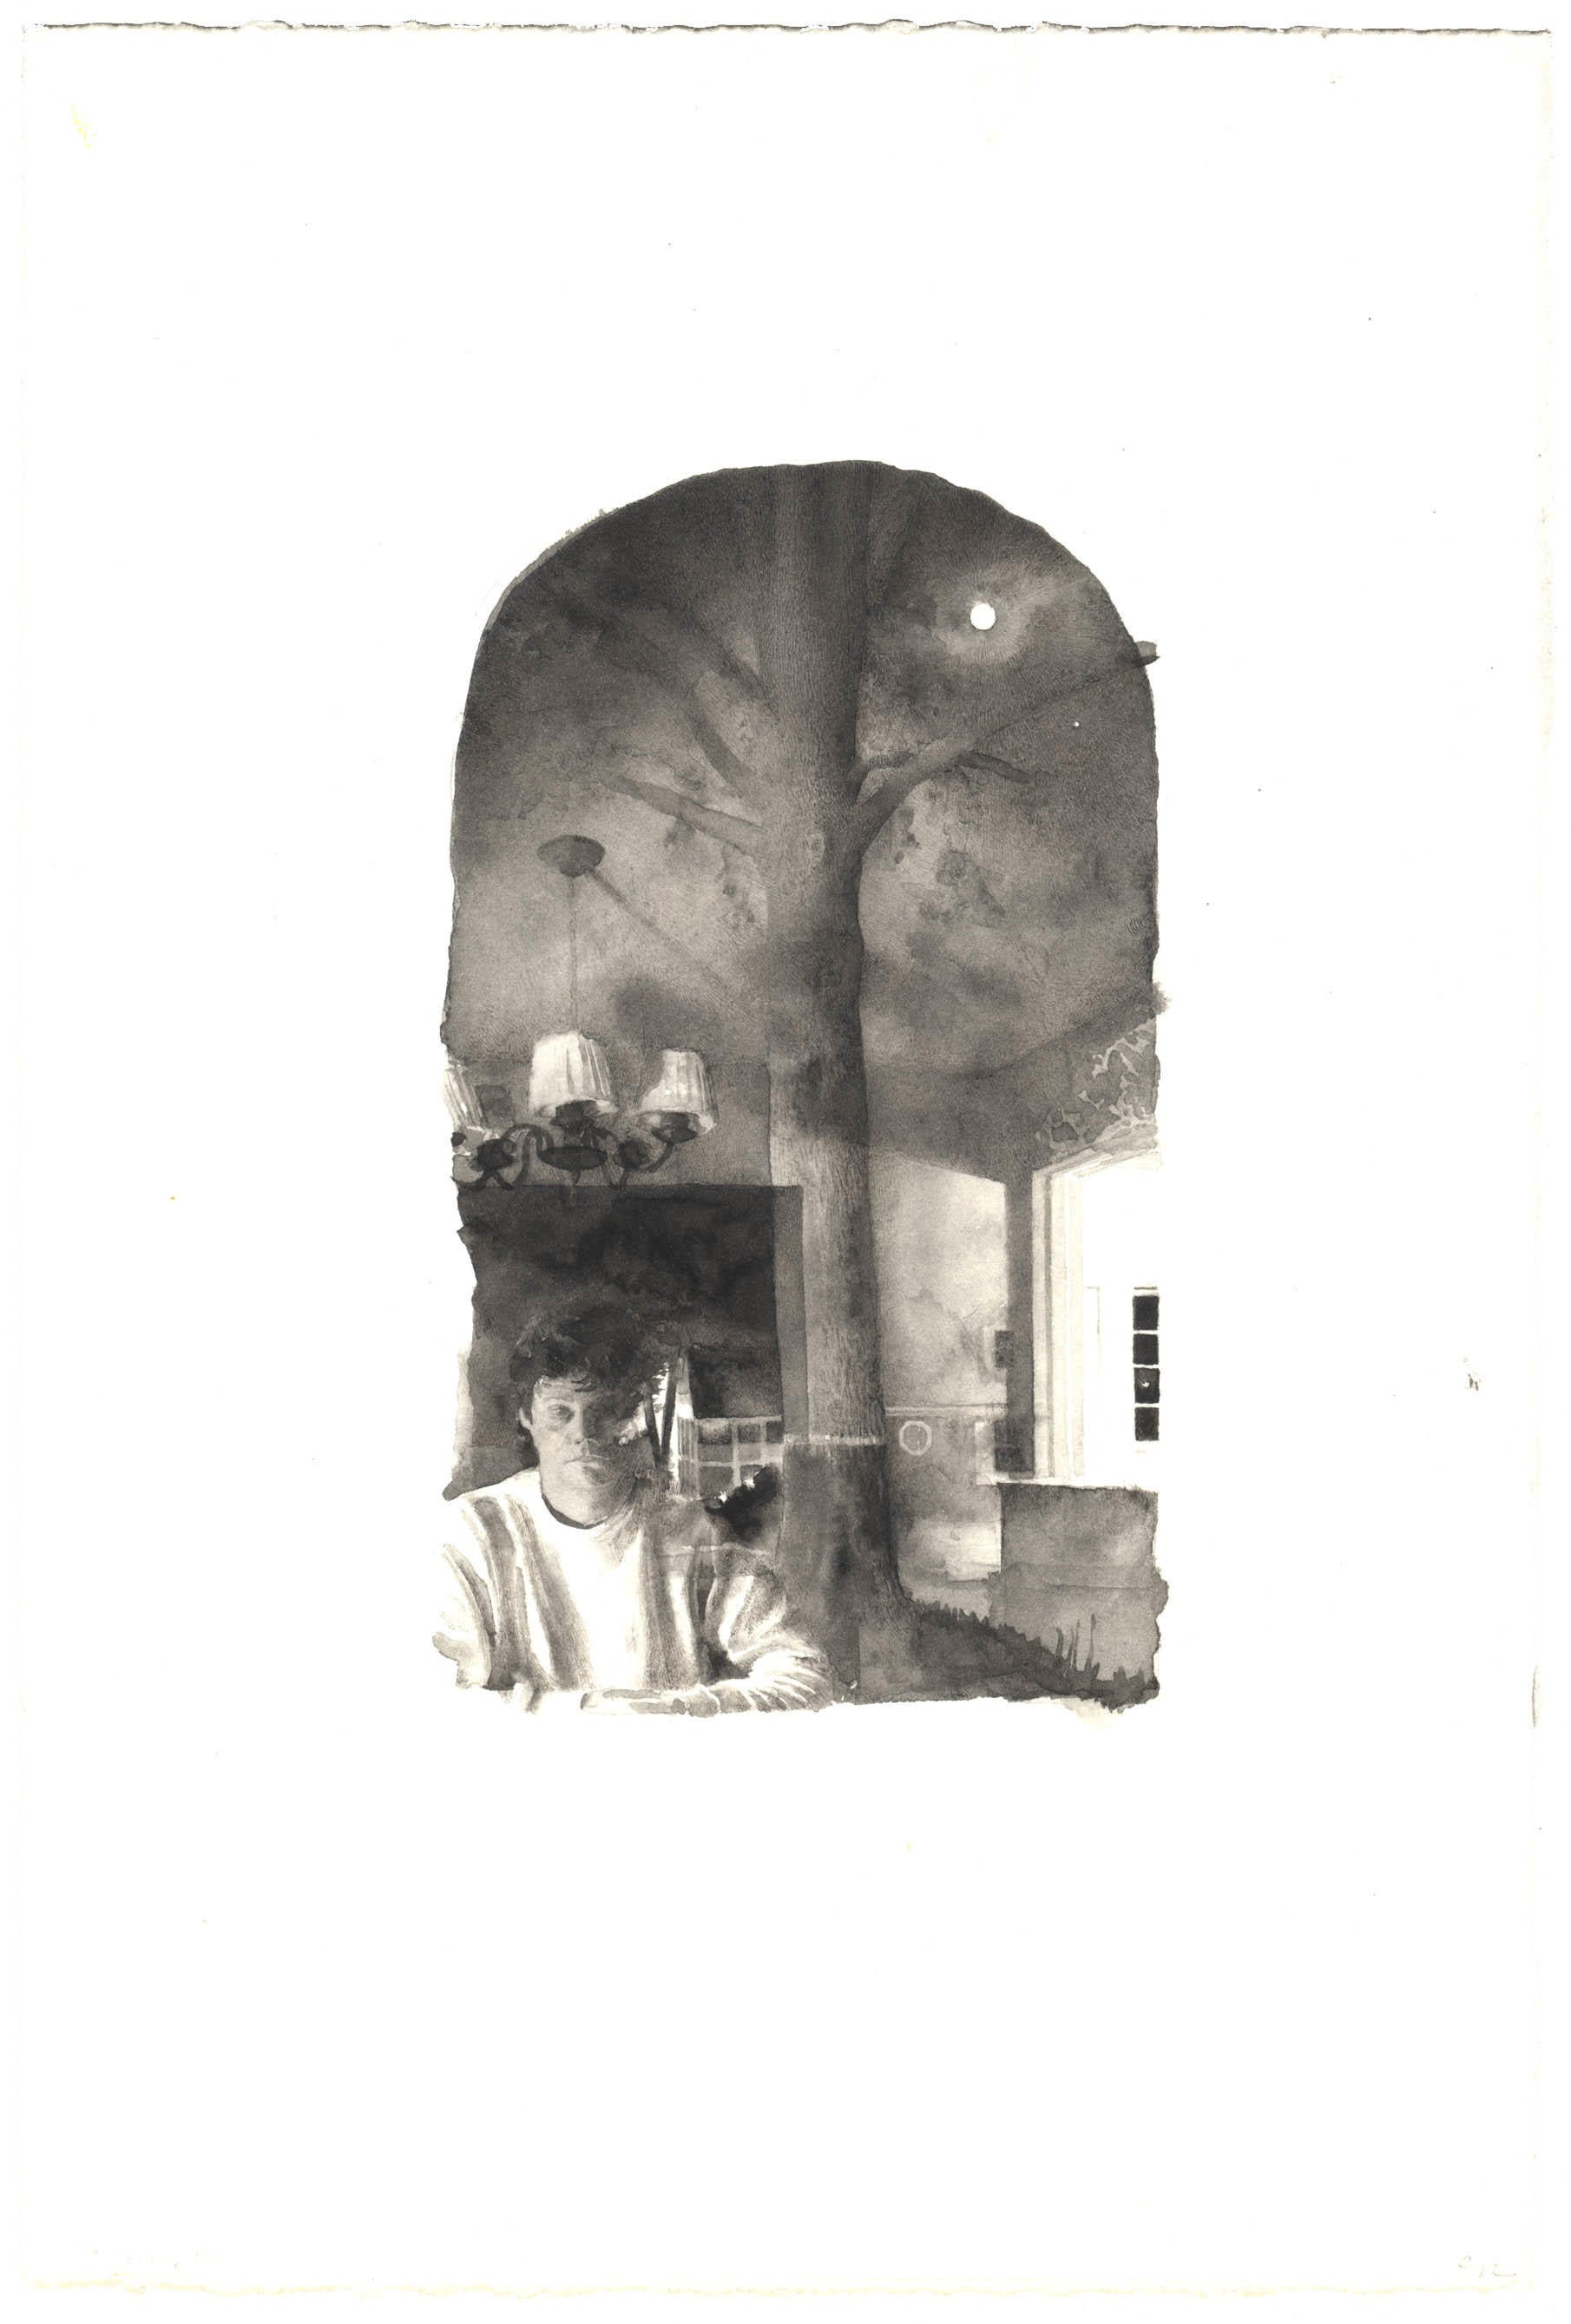 Self-Portrait with Moon and Tree: Second Study image